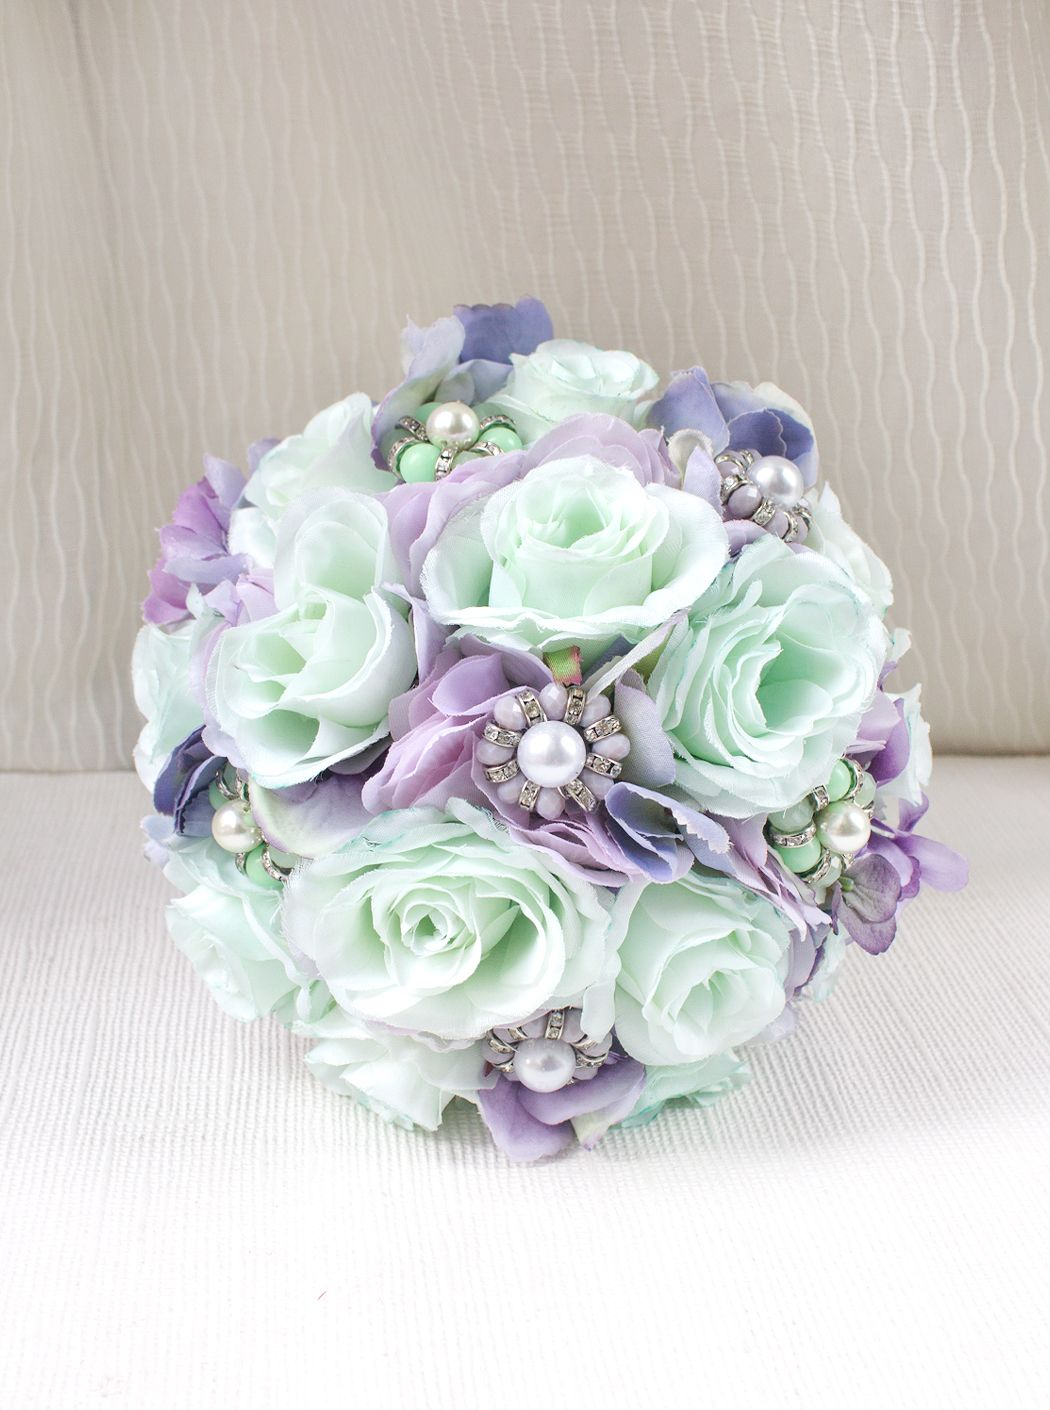 Mint lavender flower bridal bouquet all bouquets are handcrafted mint lavender flower bridal bouquet all bouquets are handcrafted in new york city and izmirmasajfo Choice Image